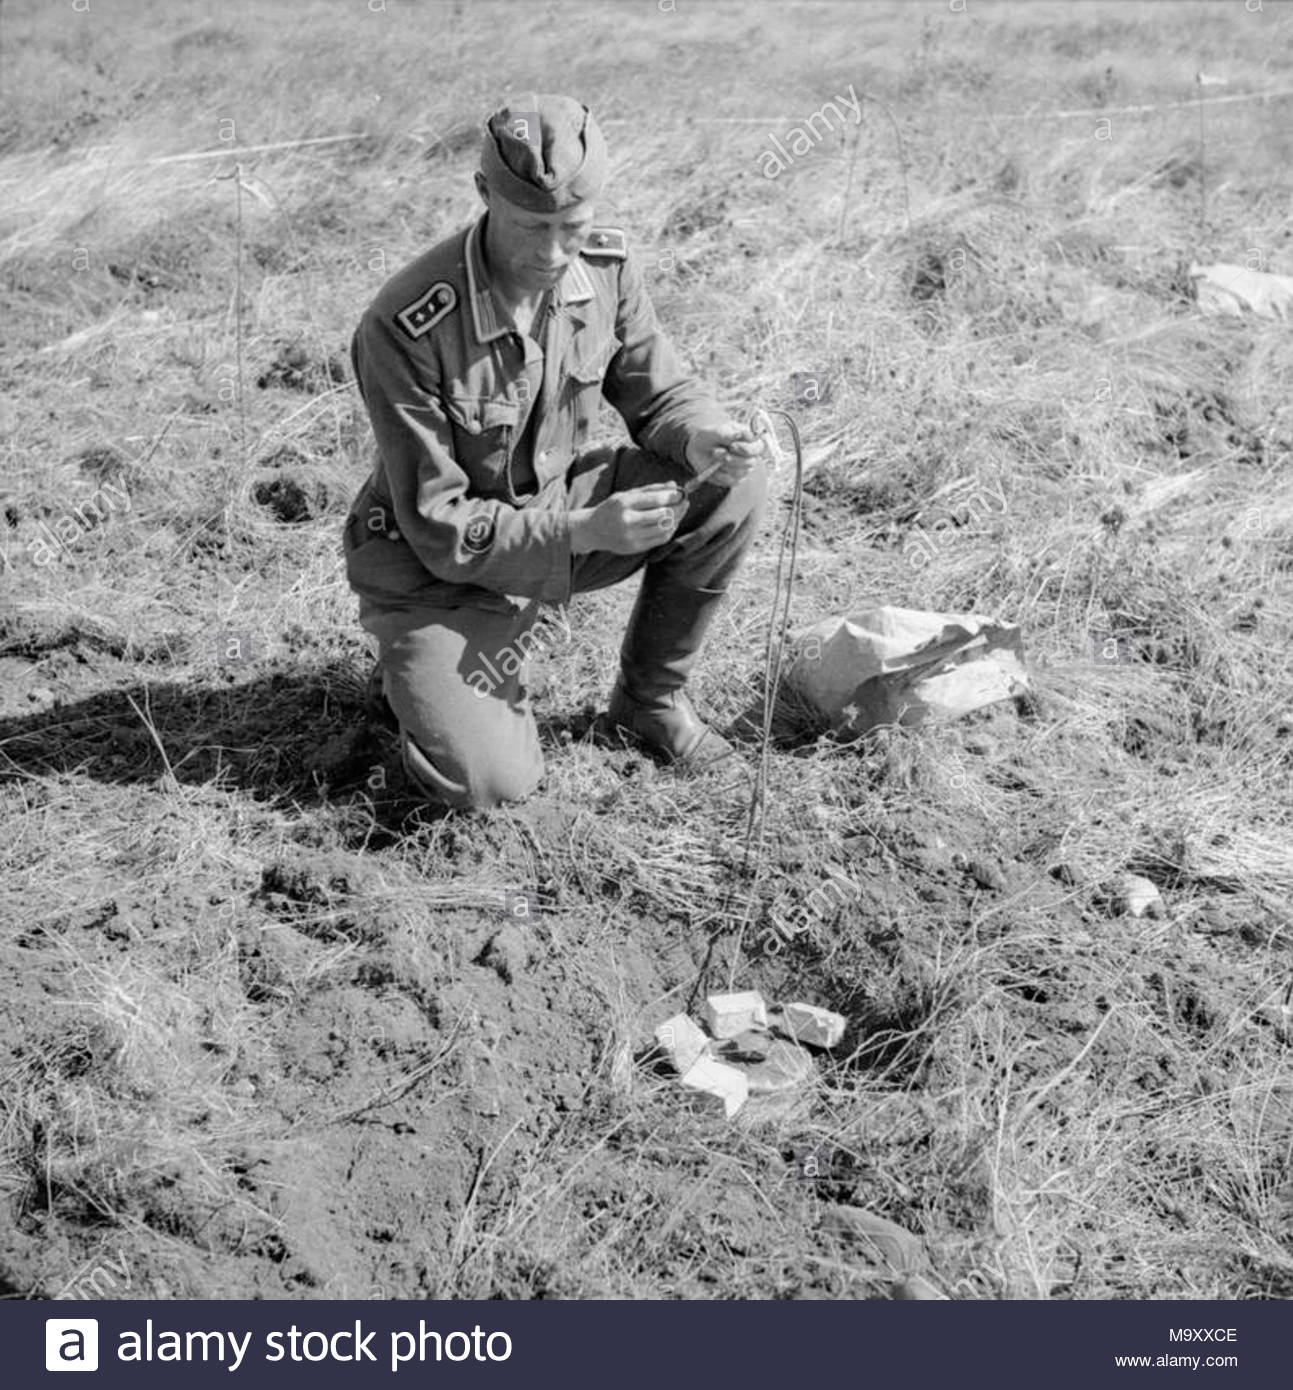 Blown A Fuse Stock Photos Images Alamy Carrier Blowing 3 Amp Norway After Liberation 1945 German Prisoner Engaged In Clearing Minefield Near Stavanger Fixes